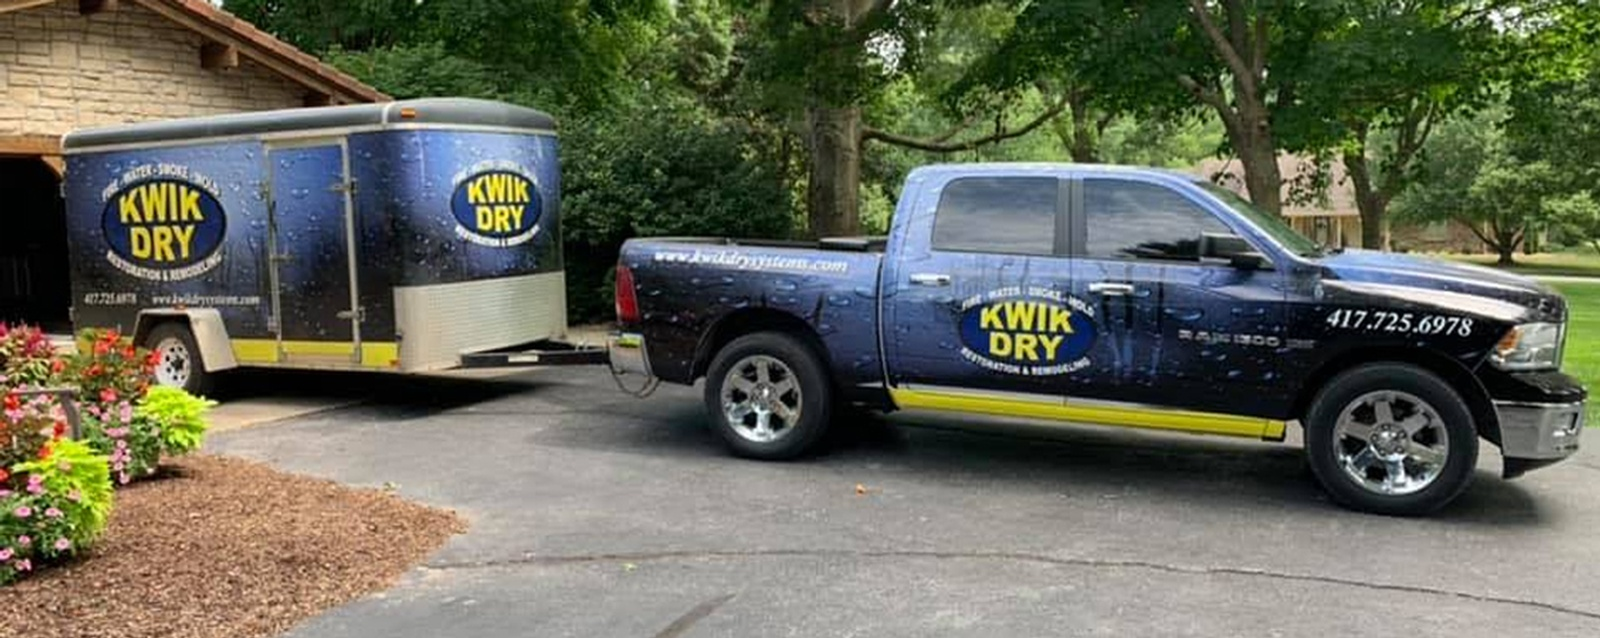 Services by Kwik Dry LLC